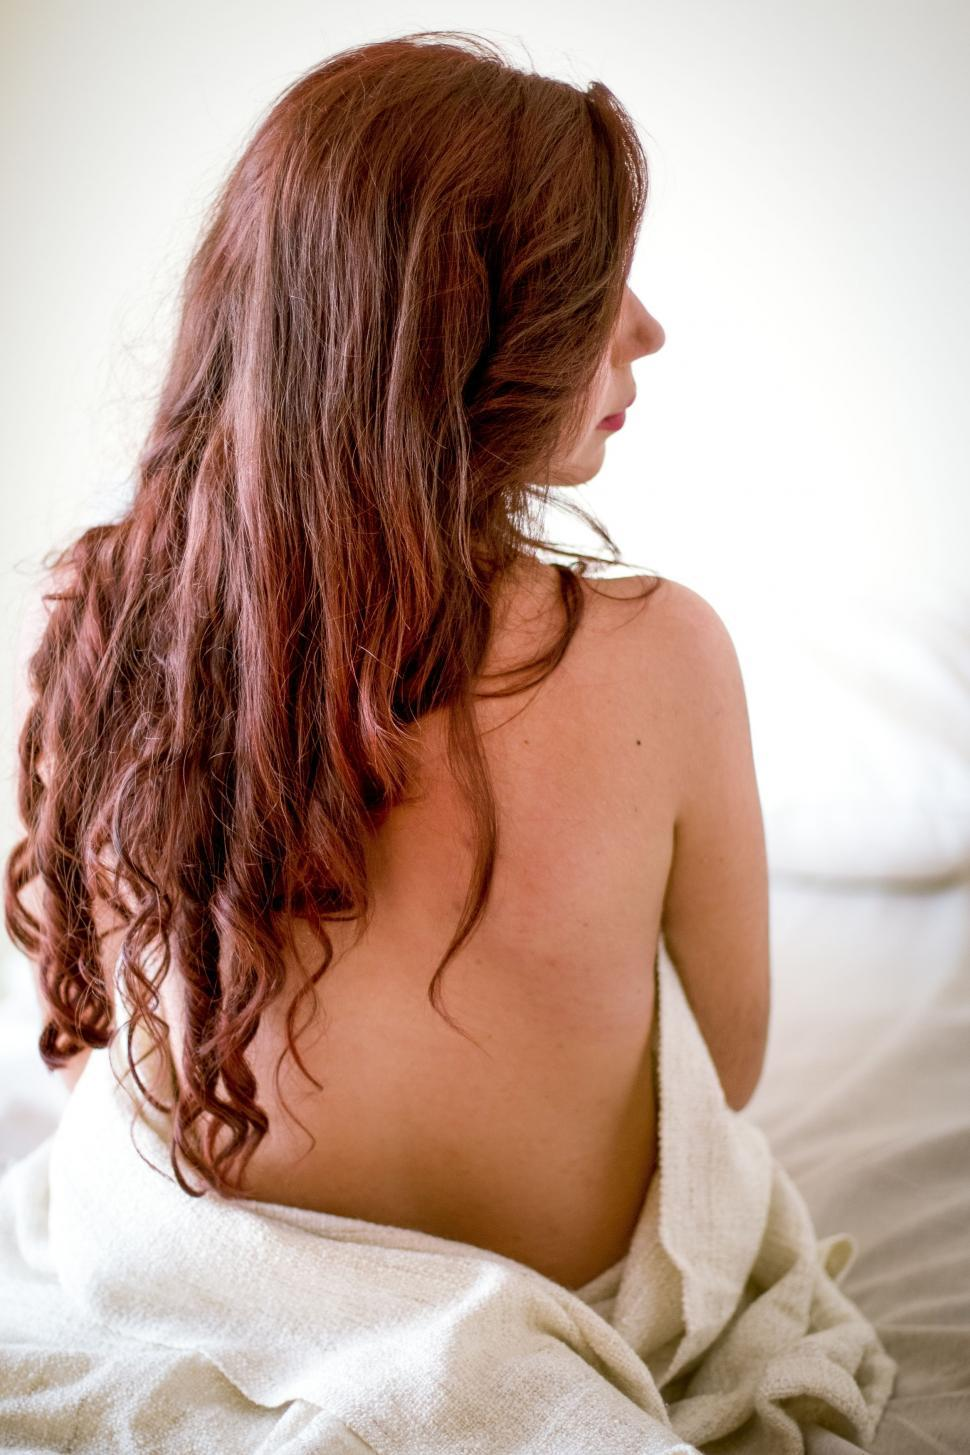 Download Free Stock Photo of Rear View of half naked woman on Bed